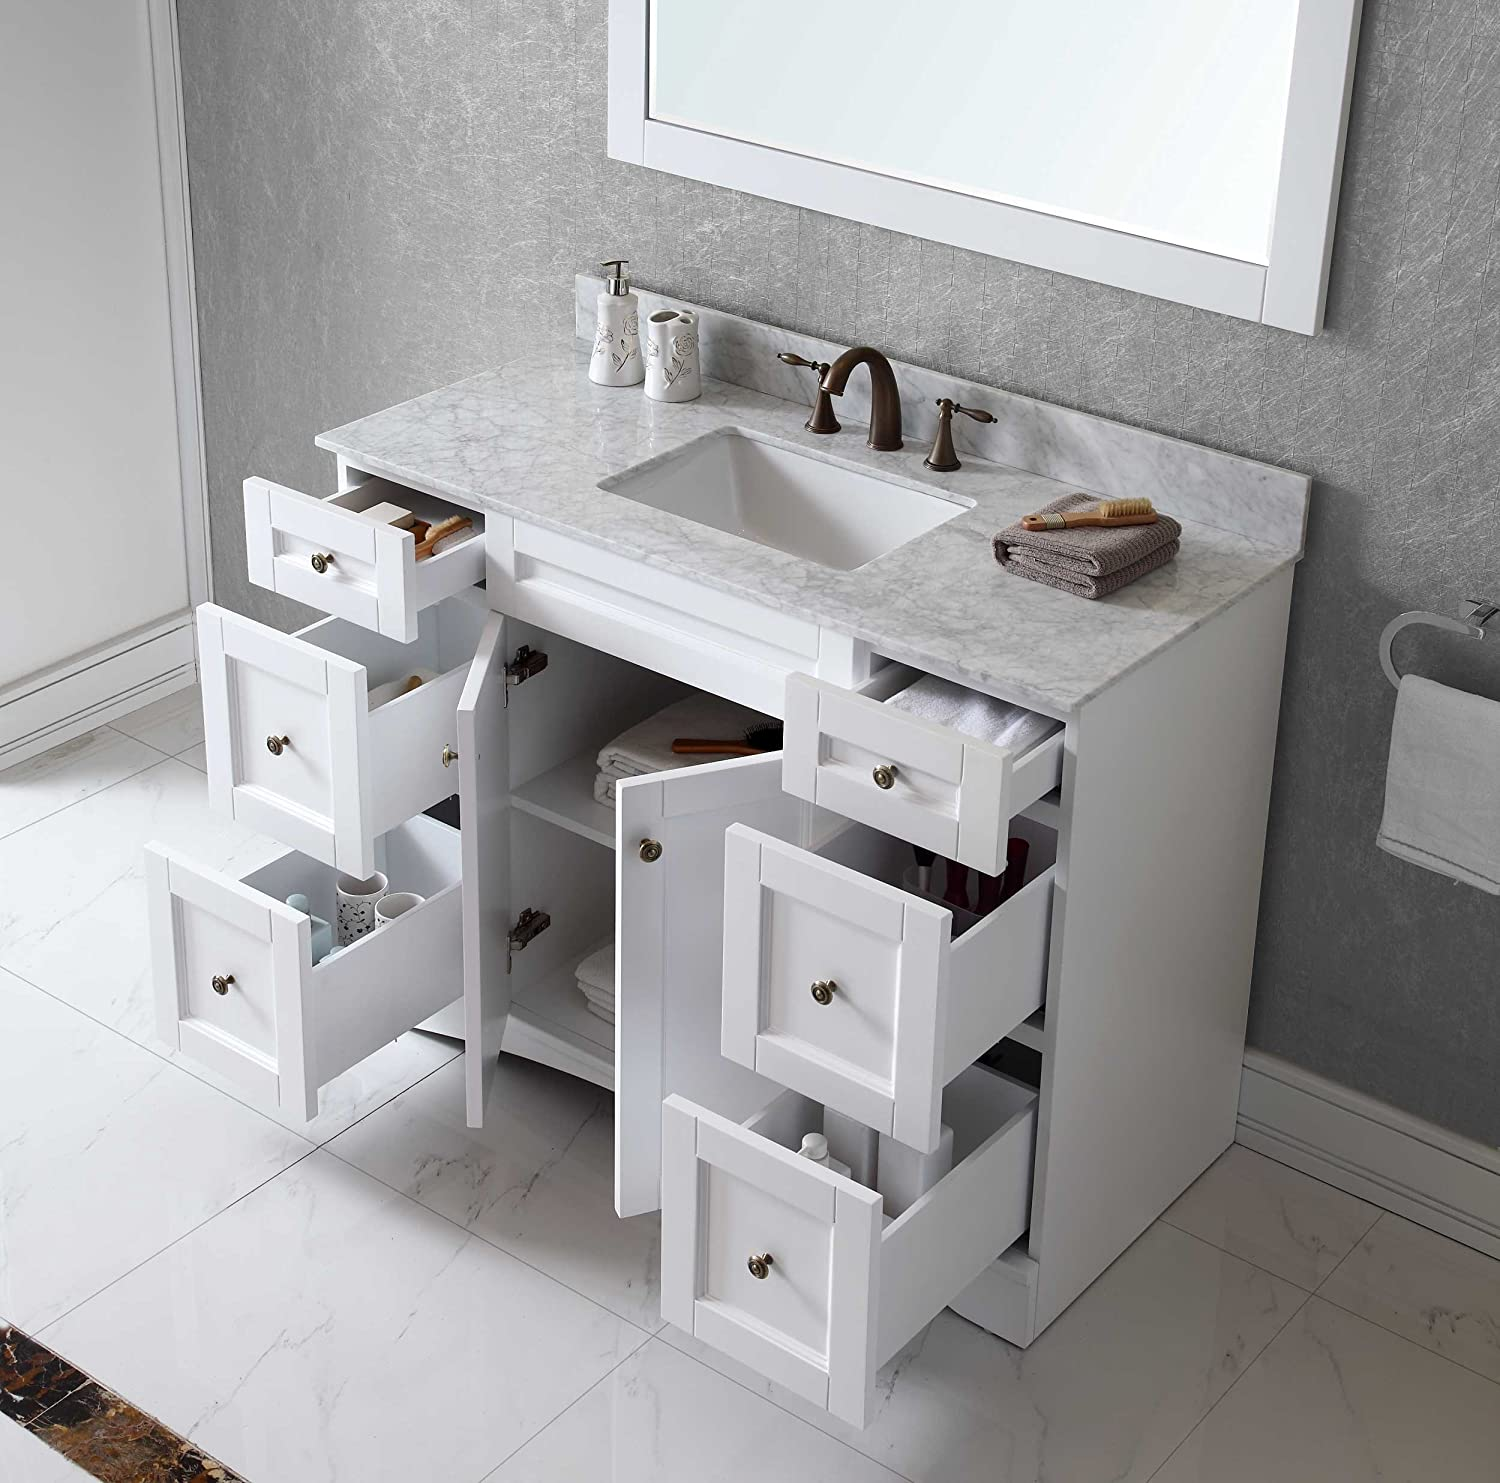 Virtu ESWMSQWH Elise Single Bathroom Vanity Cabinet Set - Single bathroom vanity cabinets